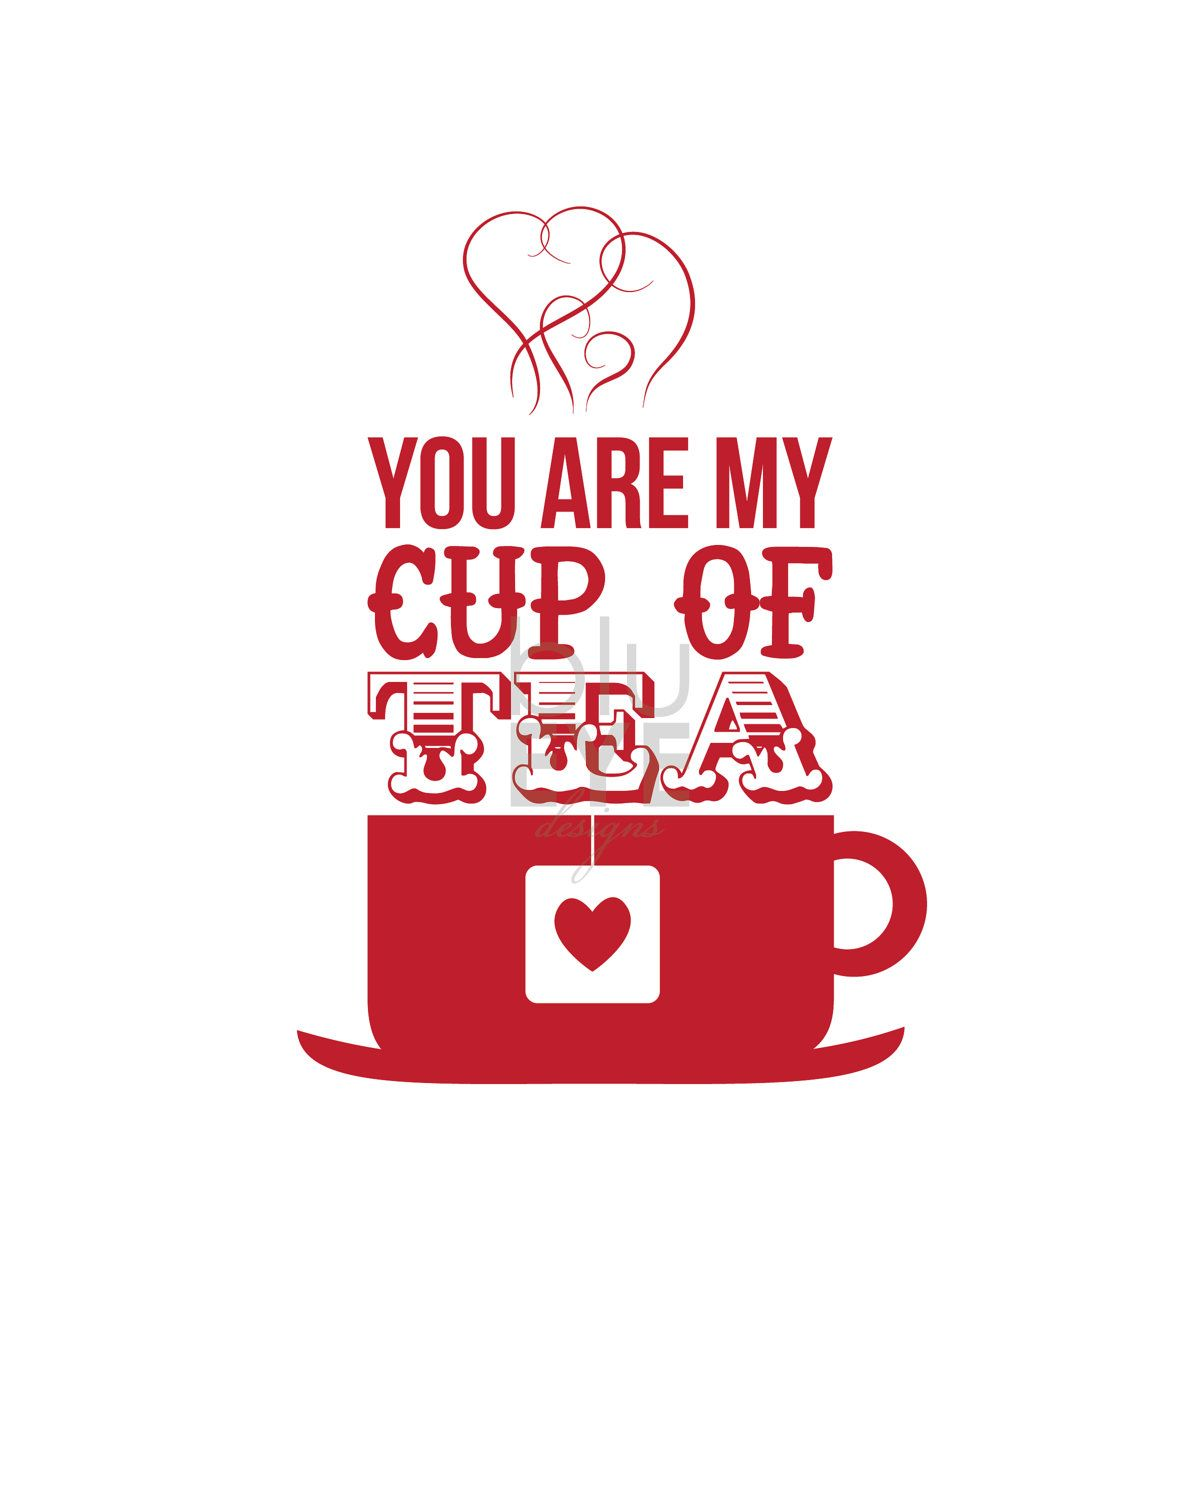 You Are My Cup Of Tea print by blueyedesigns on Etsy, $16.00